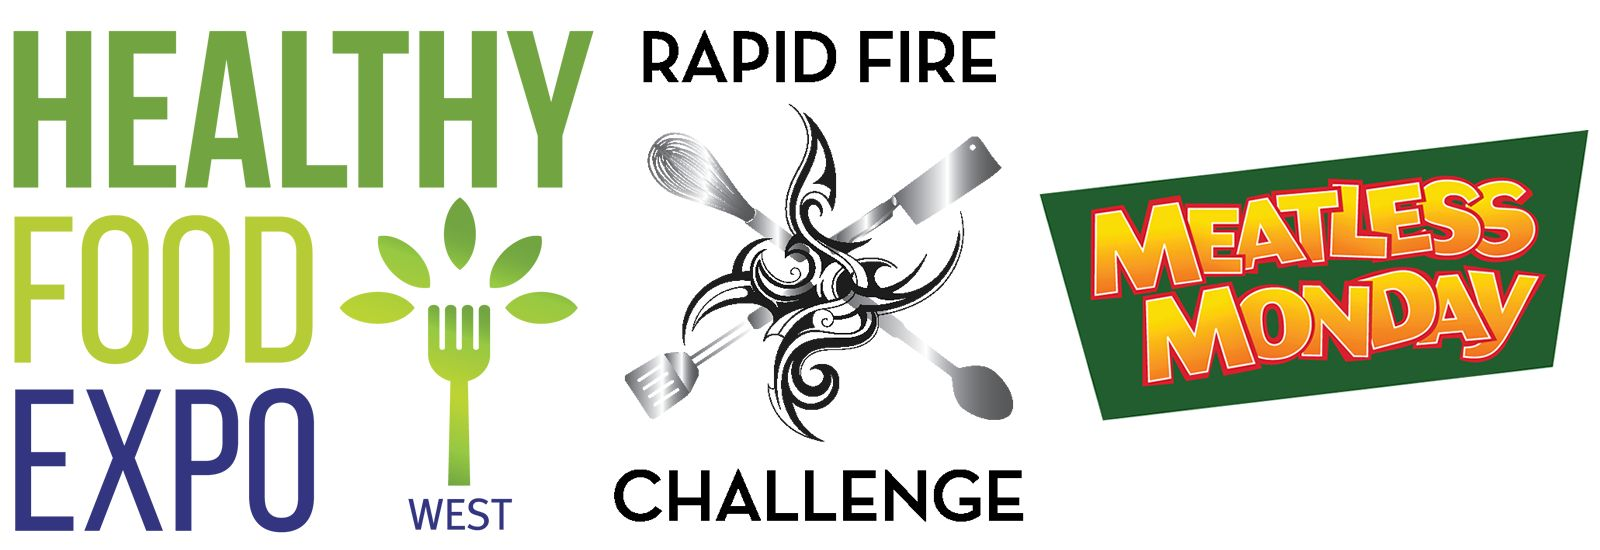 Who Will Win the 2019 Meatless Monday Rapid Fire Challenge at the Healthy Food Expo, Florida Restaurant & Lodging Show? Monday, September 16, 3:30-5 P.M., Center Stage